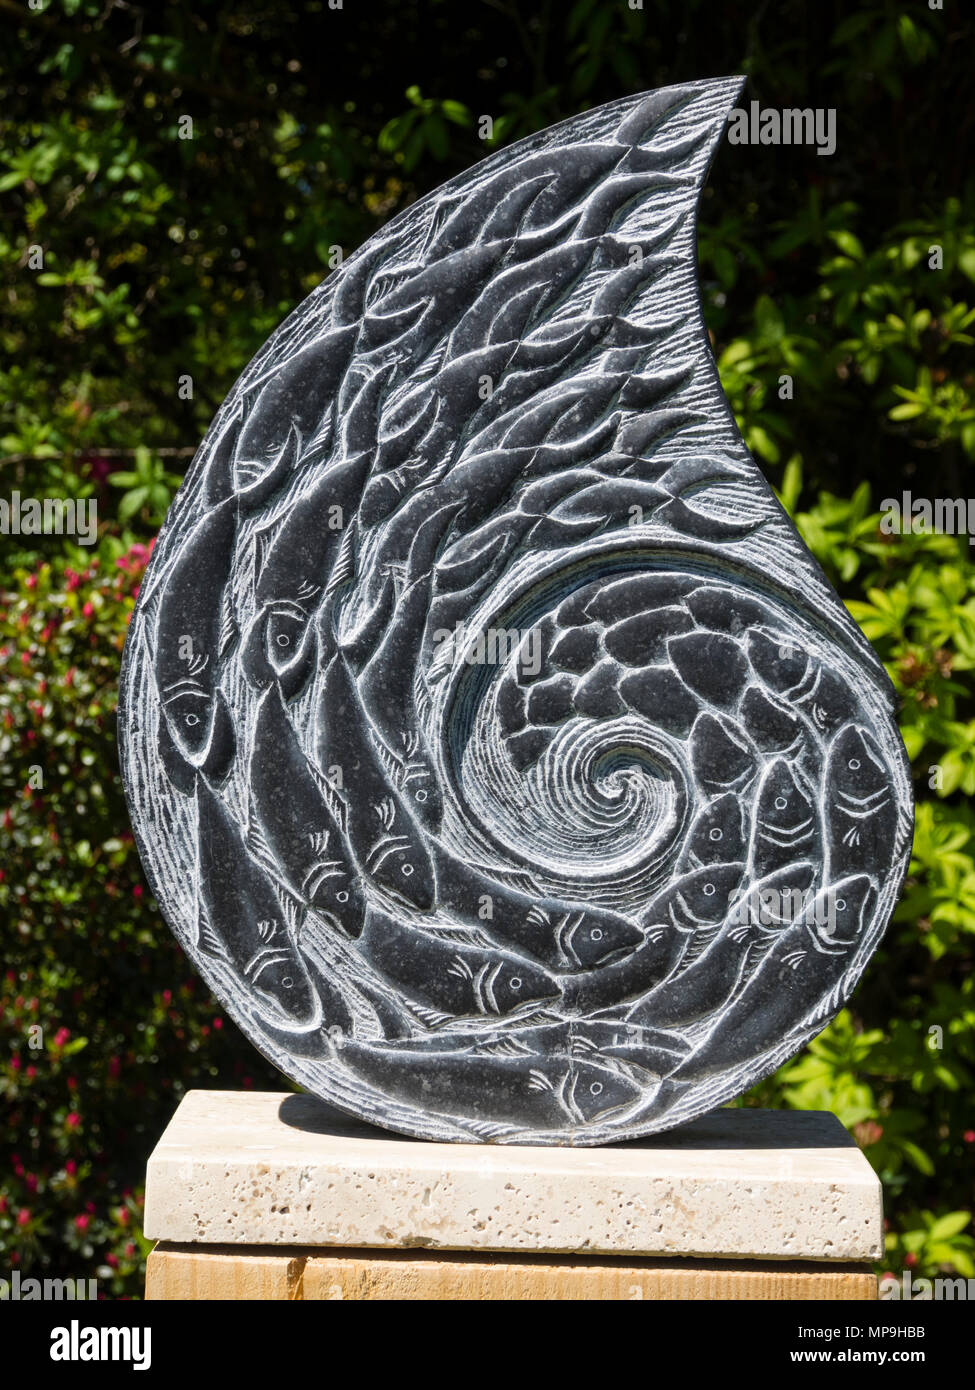 Zoe Singleton's 'The Turning Tide', a sculpture carved form Kilkenny Limestone exhibited at delamore Arts, Devon, UK - Stock Image